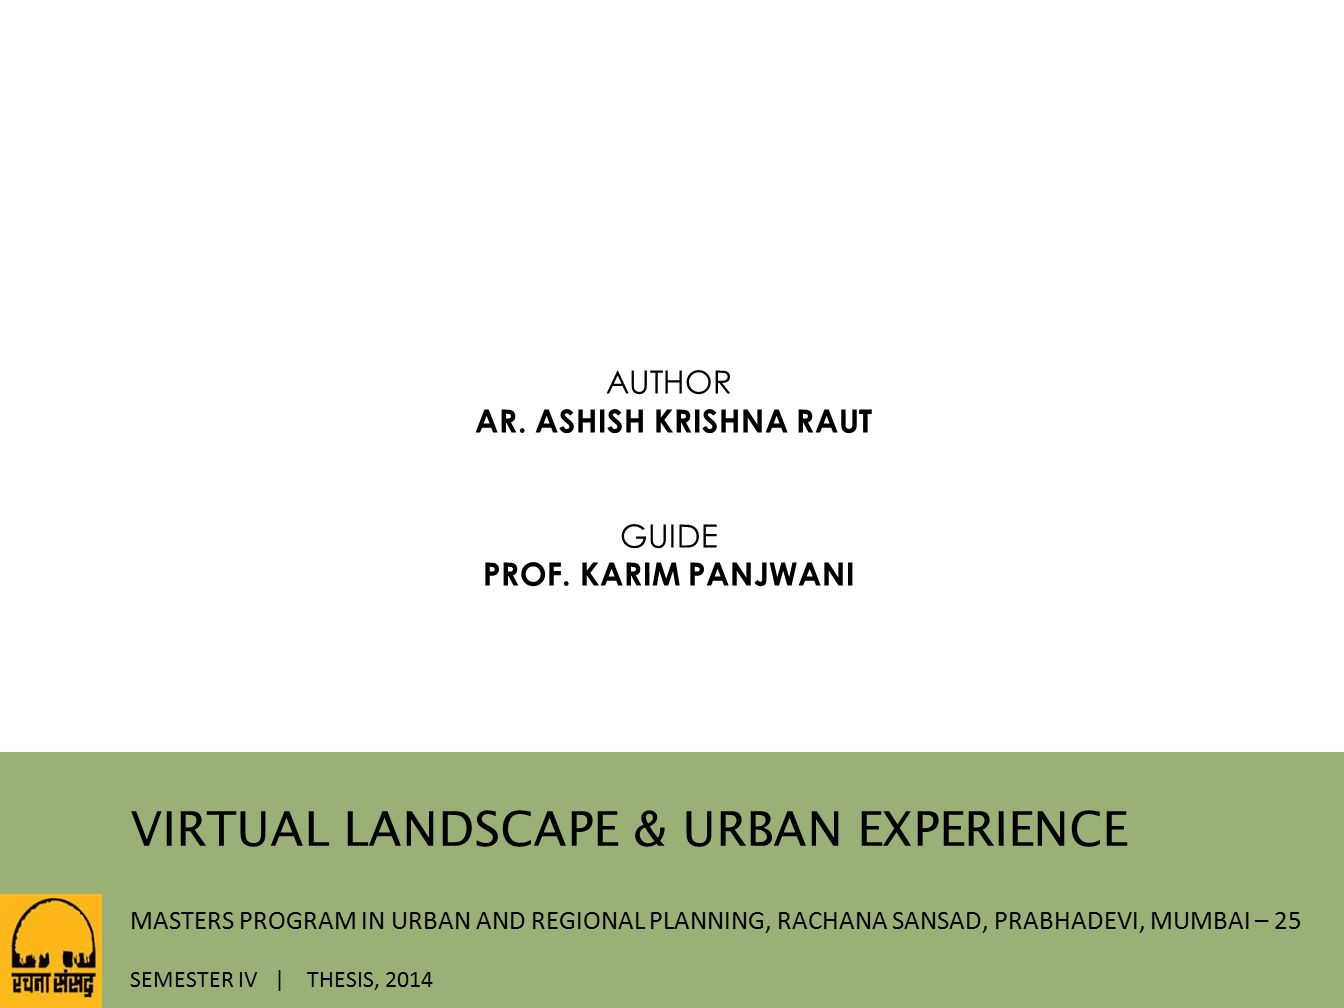 VIRTUAL LANDSCAPE & URBAN EXPERIENCE